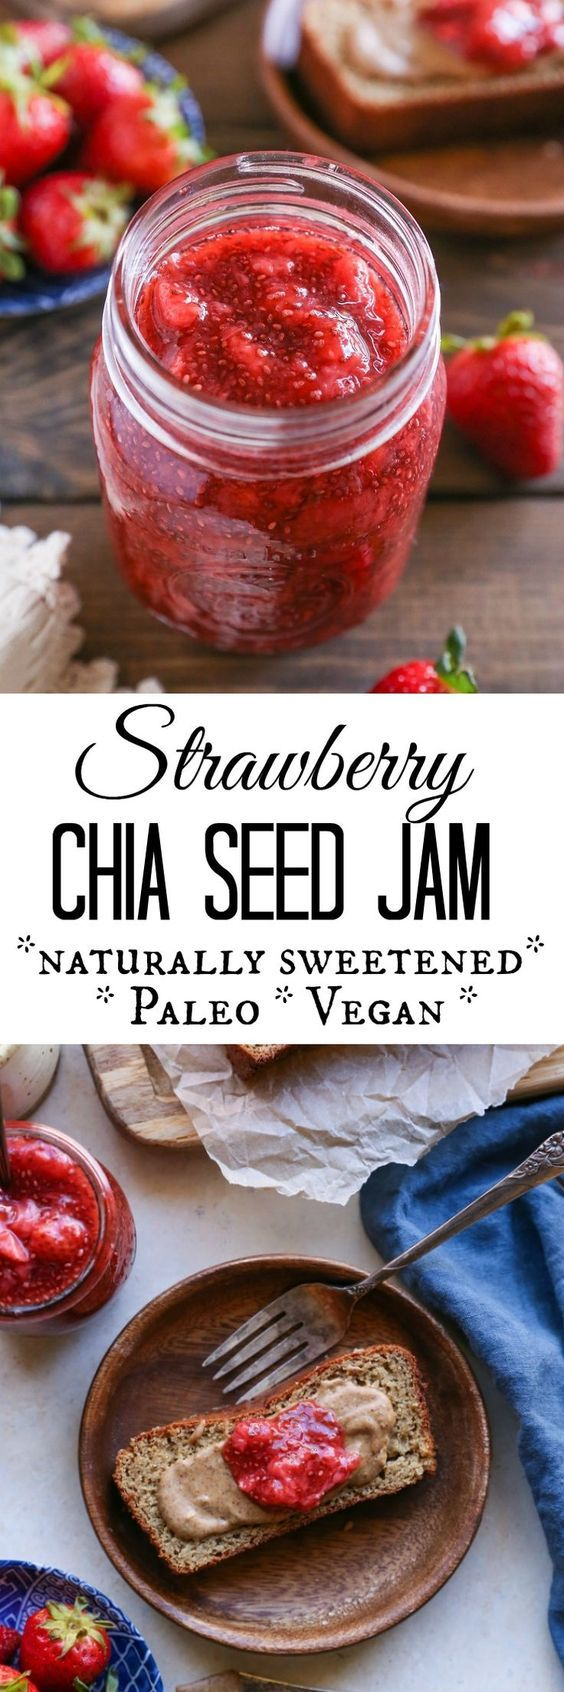 Strawberry Chia Seed Jam - an easy naturally sweetened, vegan, and paleo recipe